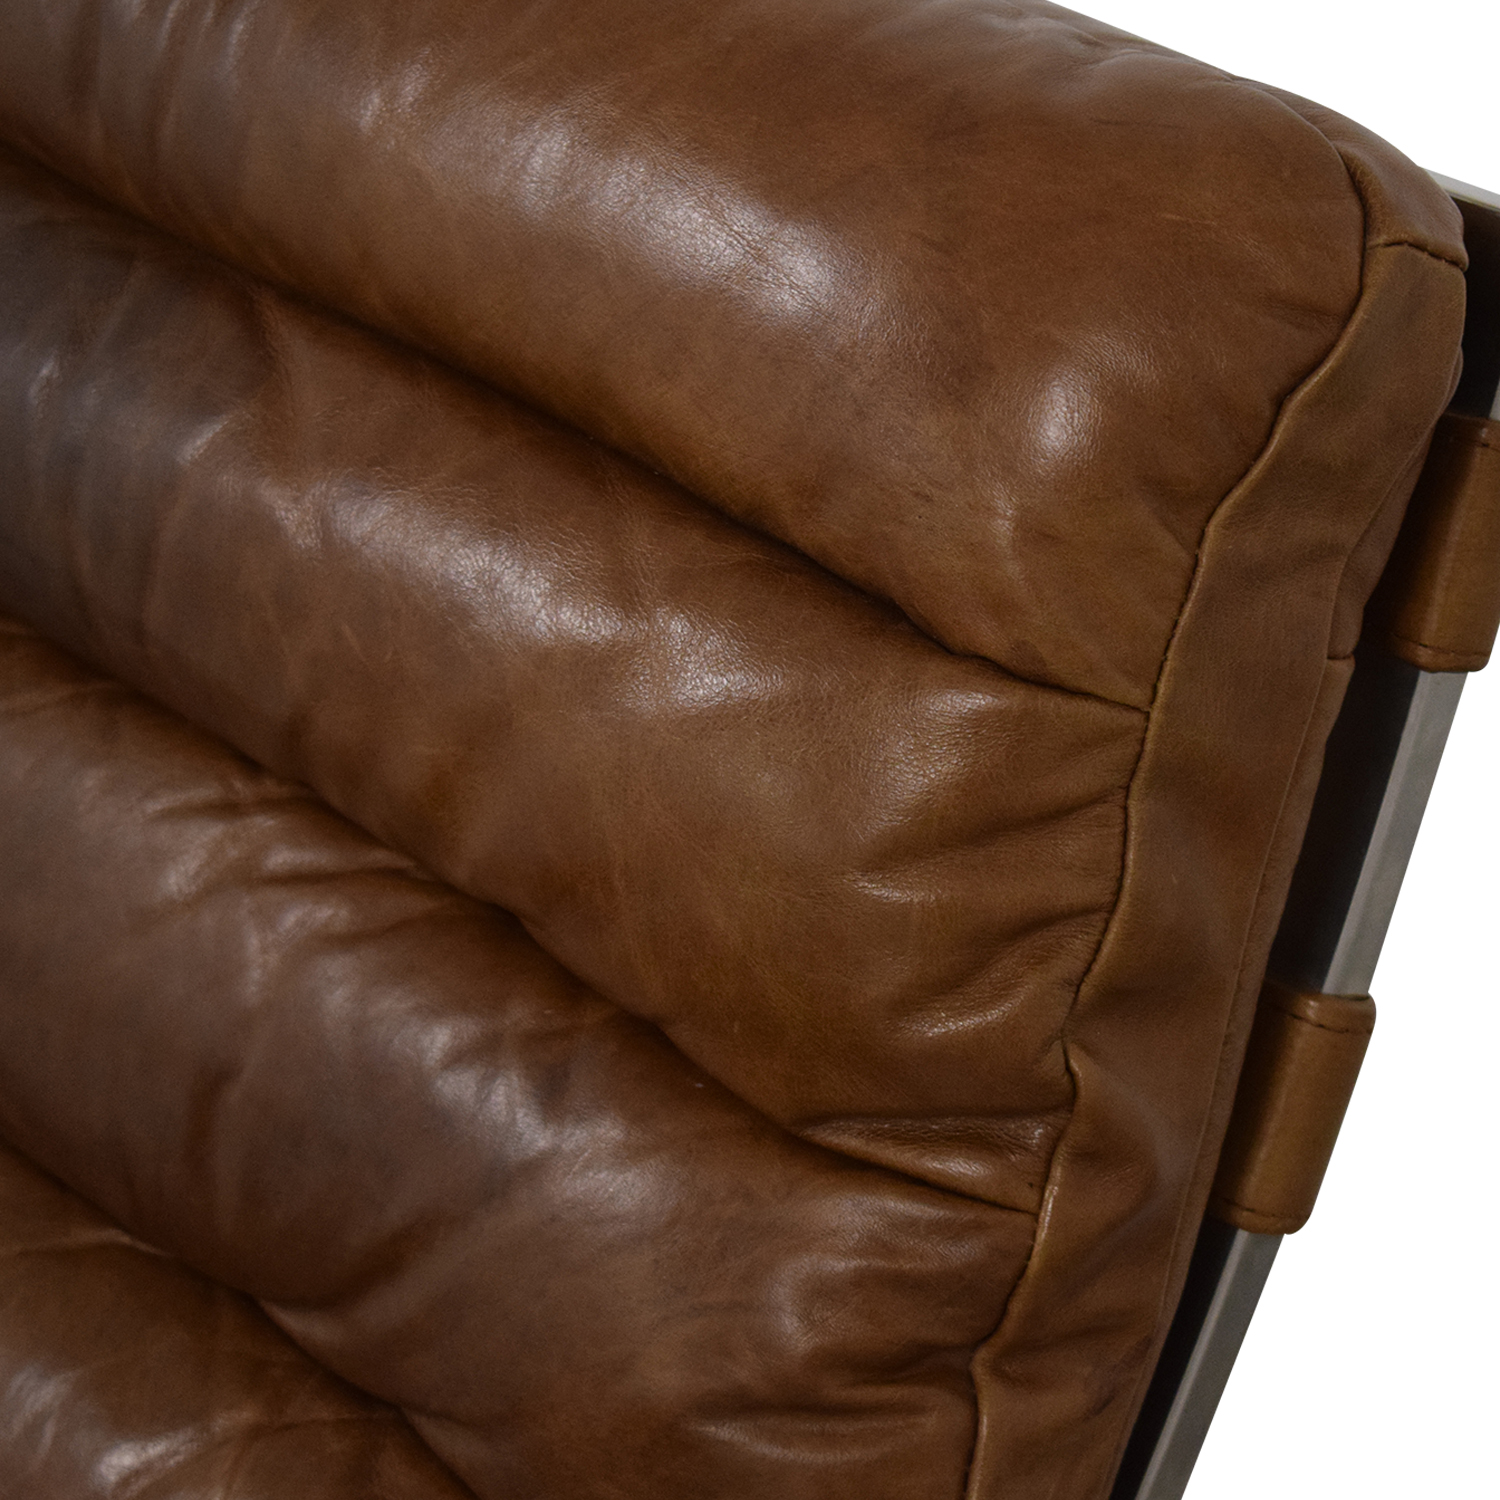 Restoration Hardware Restoration Hardware Oviedo Leather Chair brown